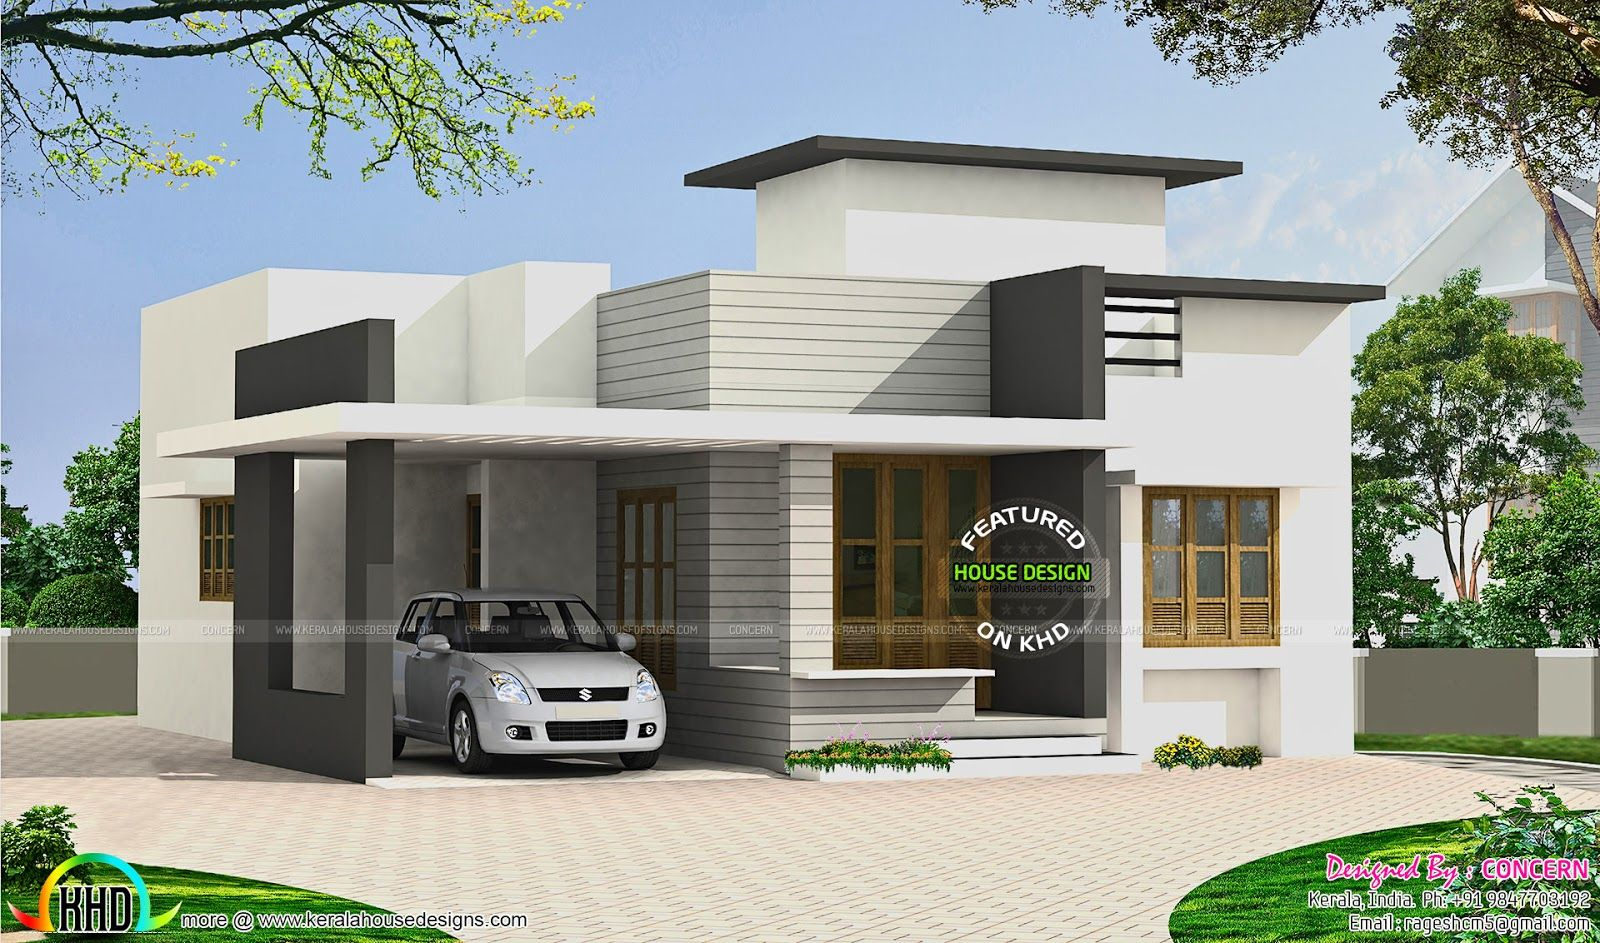 Image result for parking roof design in single floor for Single floor 4 bedroom house plans kerala